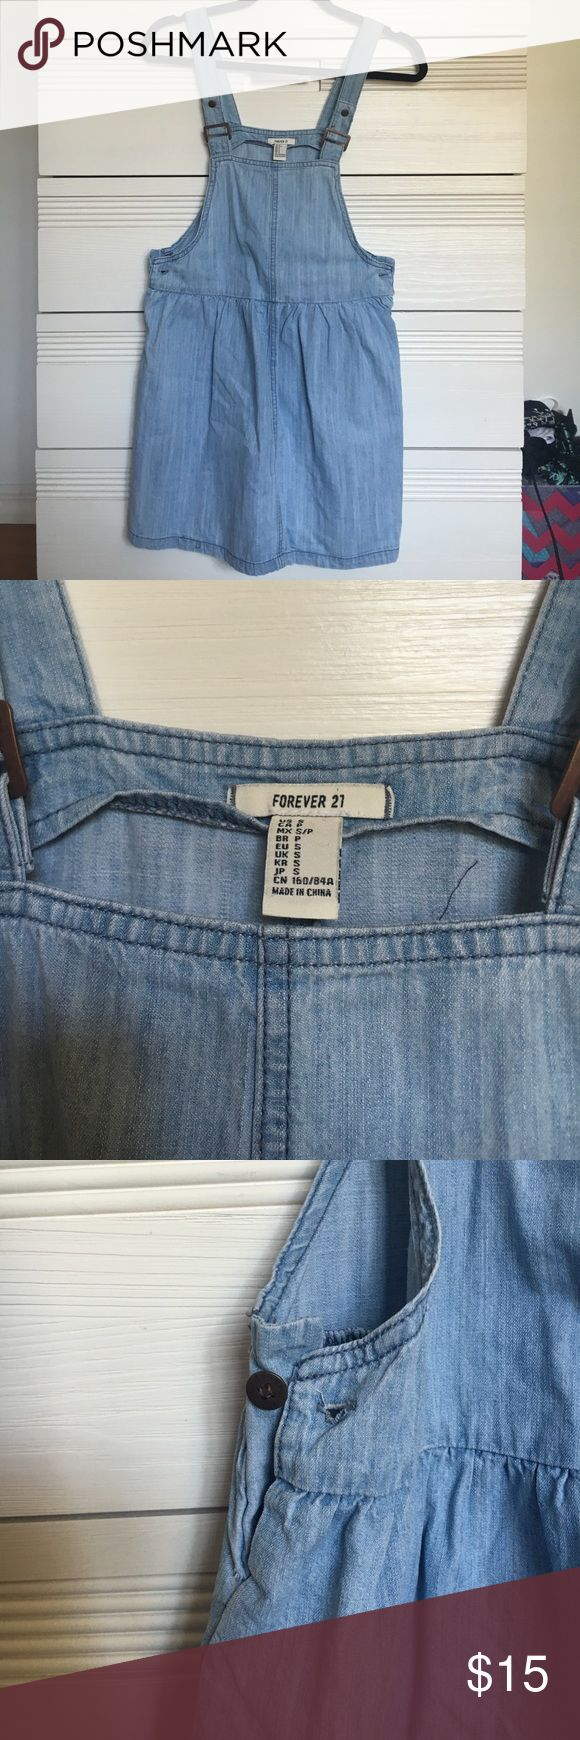 Denim pinafore skirt Overall skirt with adjustable straps. Has buttons on both sides of waist to get in it. Only worn once for a costume. F21, labeled asos for exposure ASOS Dresses Mini